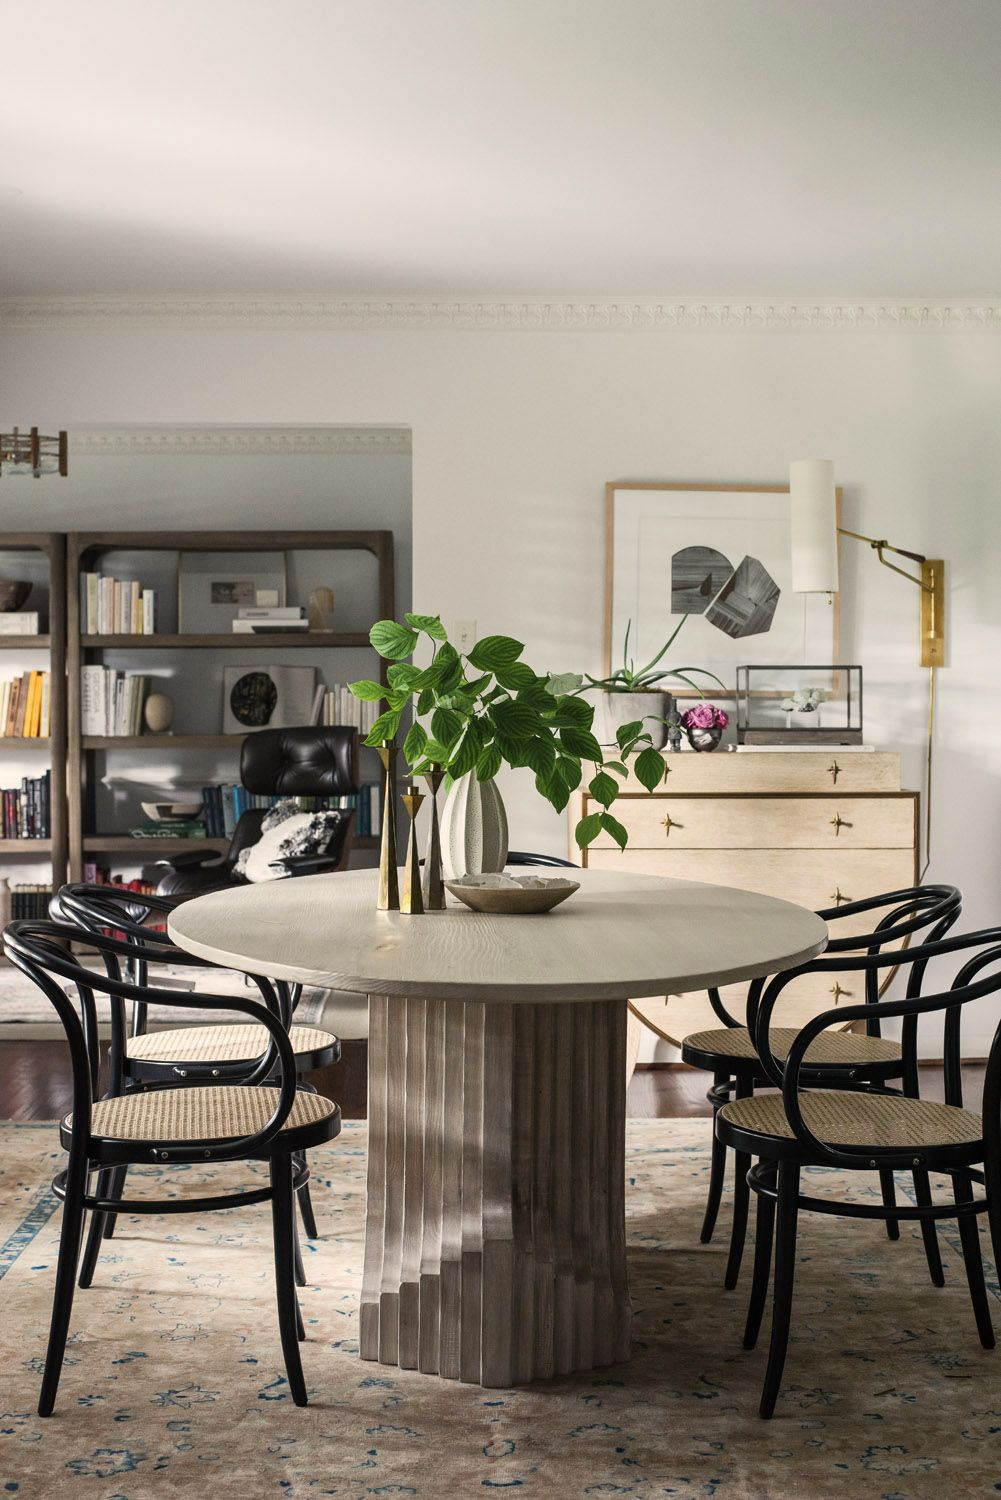 Marfa Meets New Mexico in this Home by Swoon, the studio | Rue ...